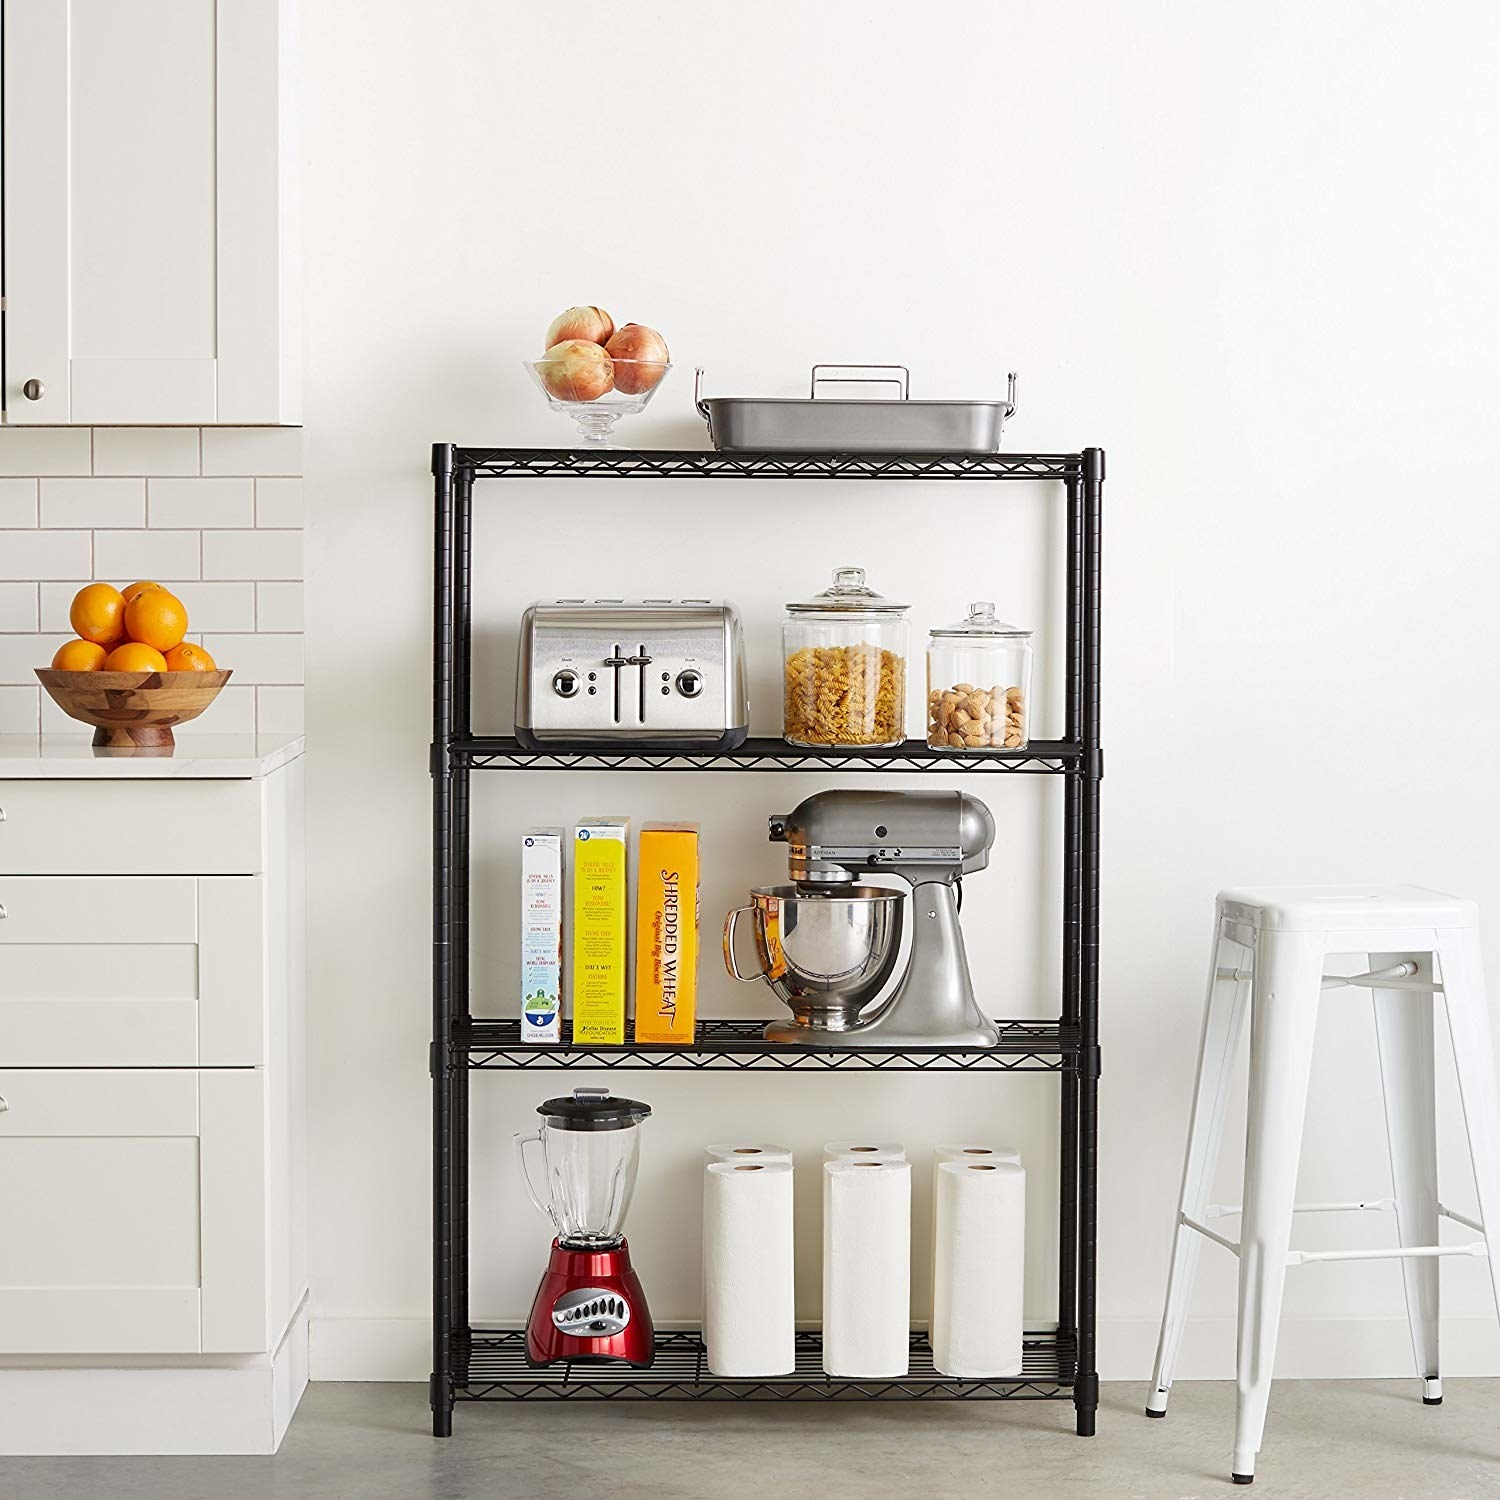 the shelves in black holding a blender, a stand mixer, a toaster, cereals, jars, and other items